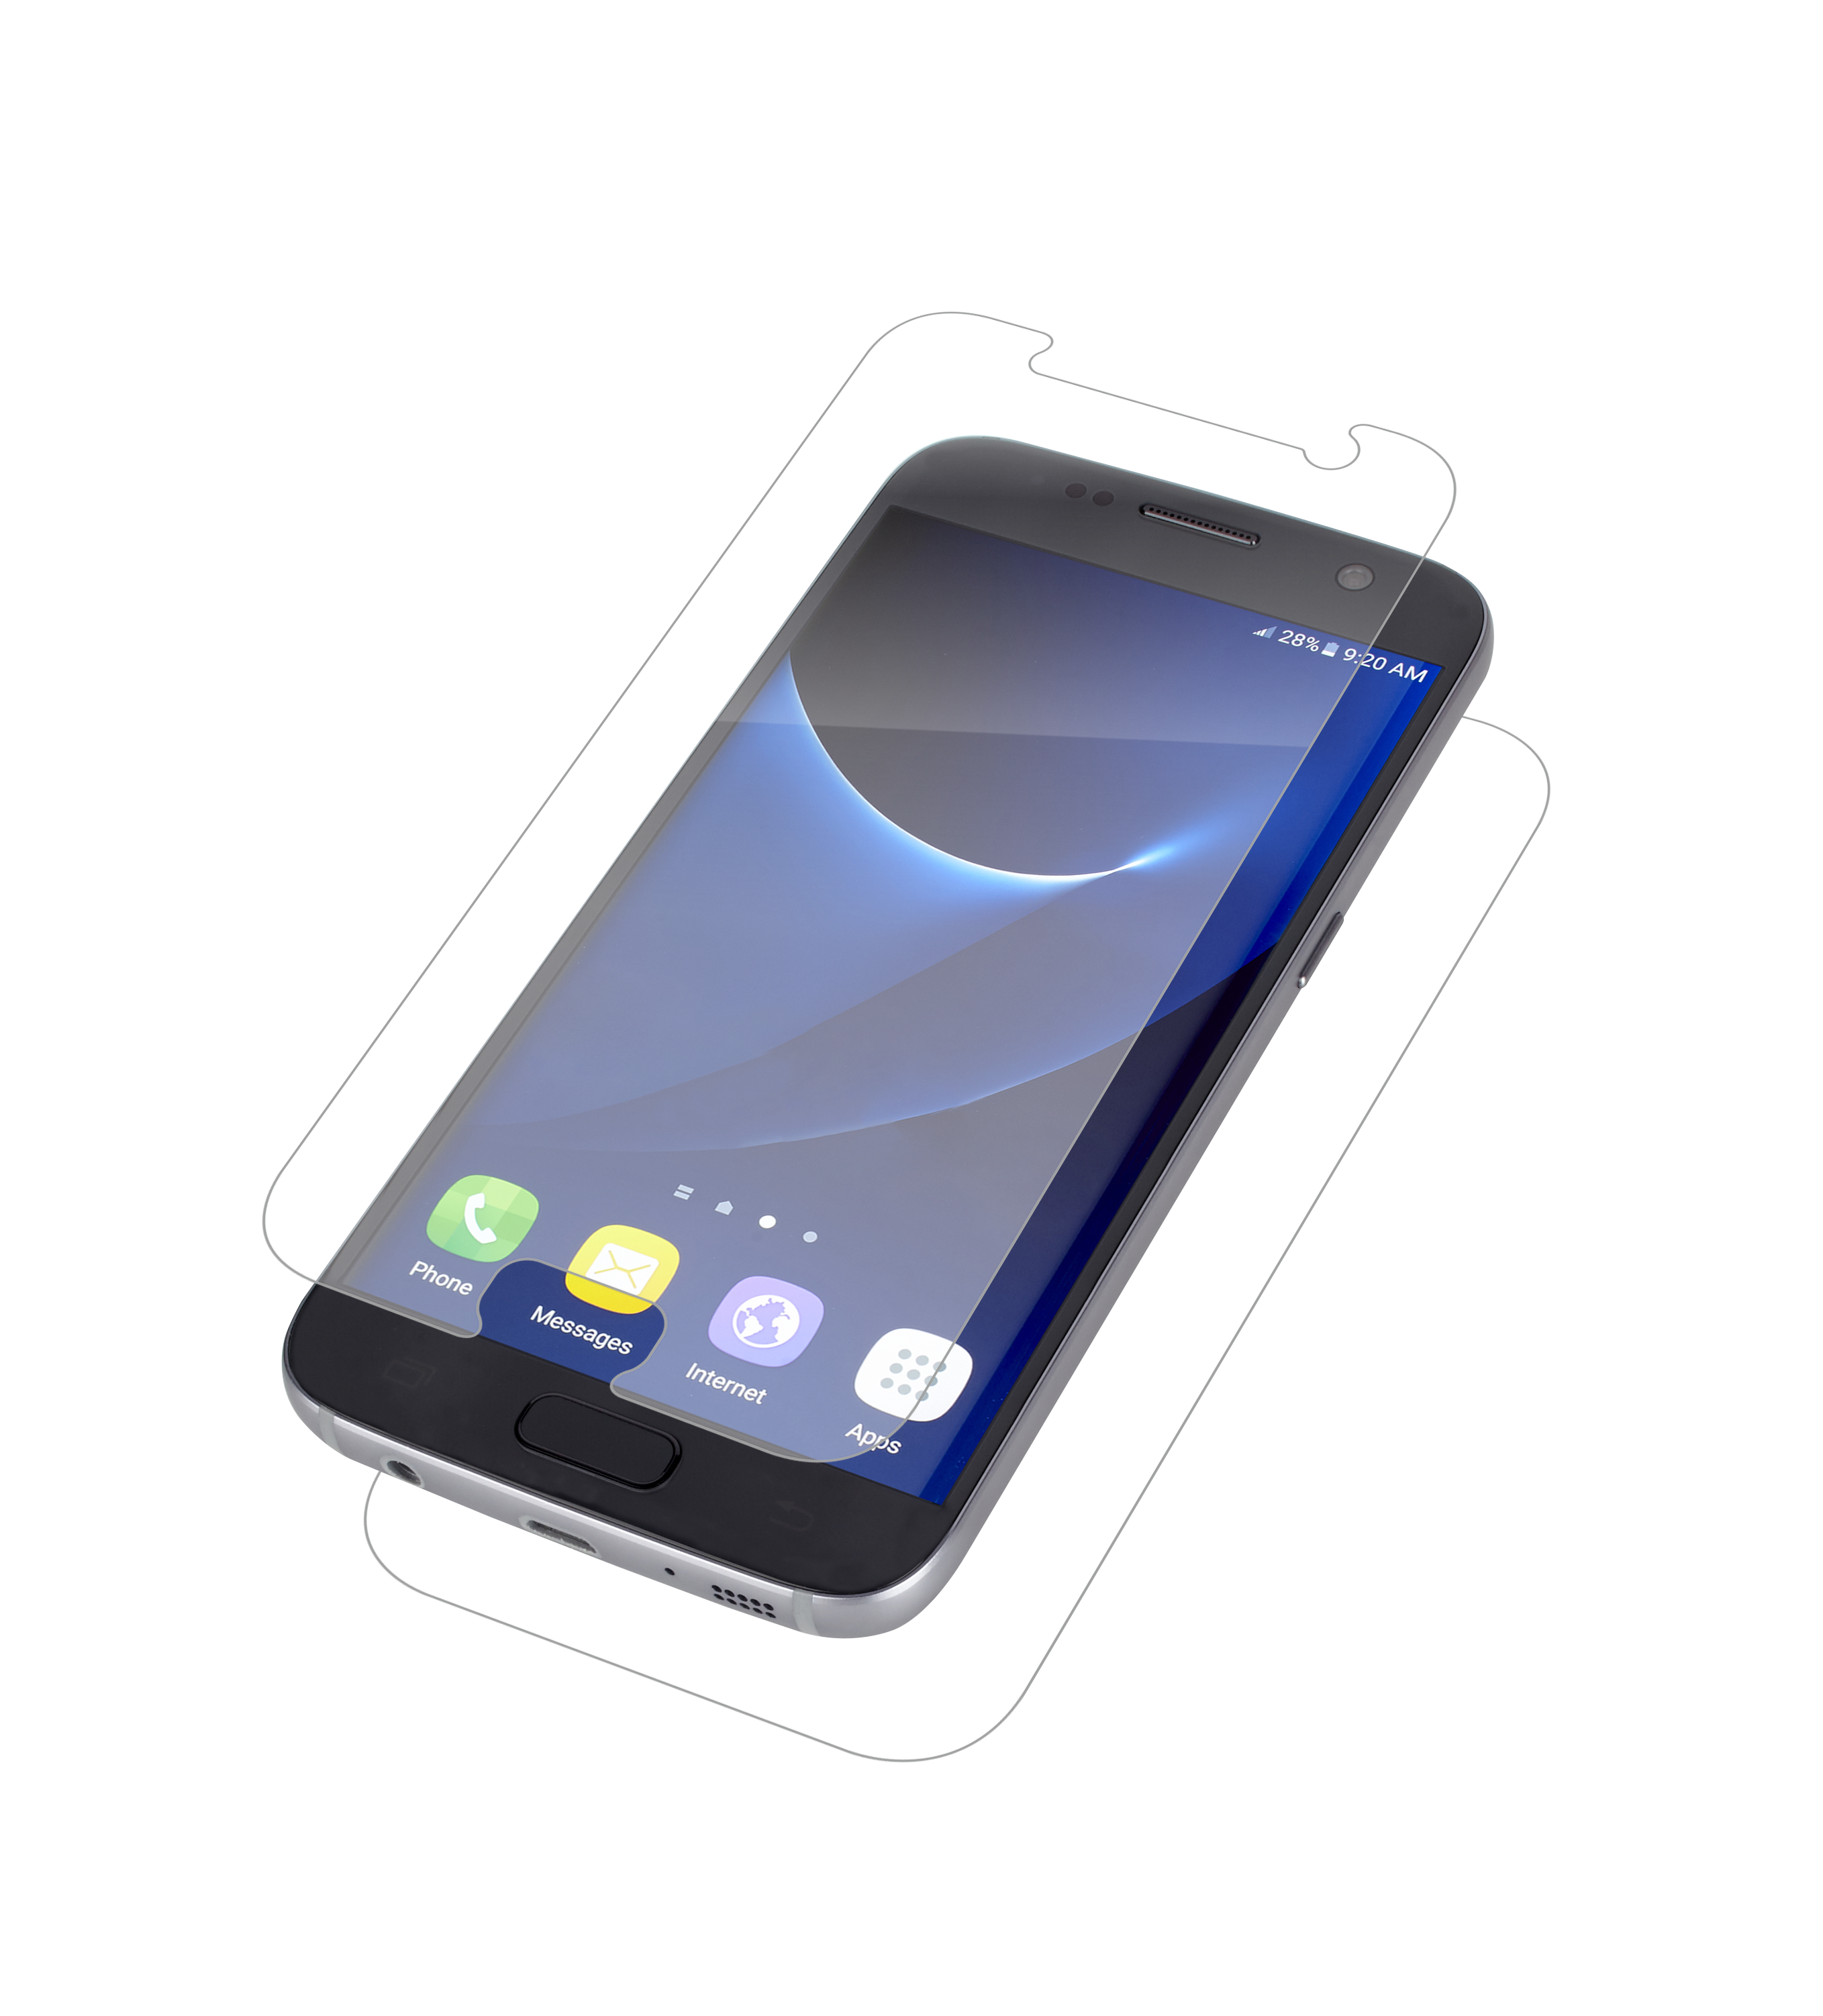 InvisibleShield HD Dry for the Samsung Galaxy S7